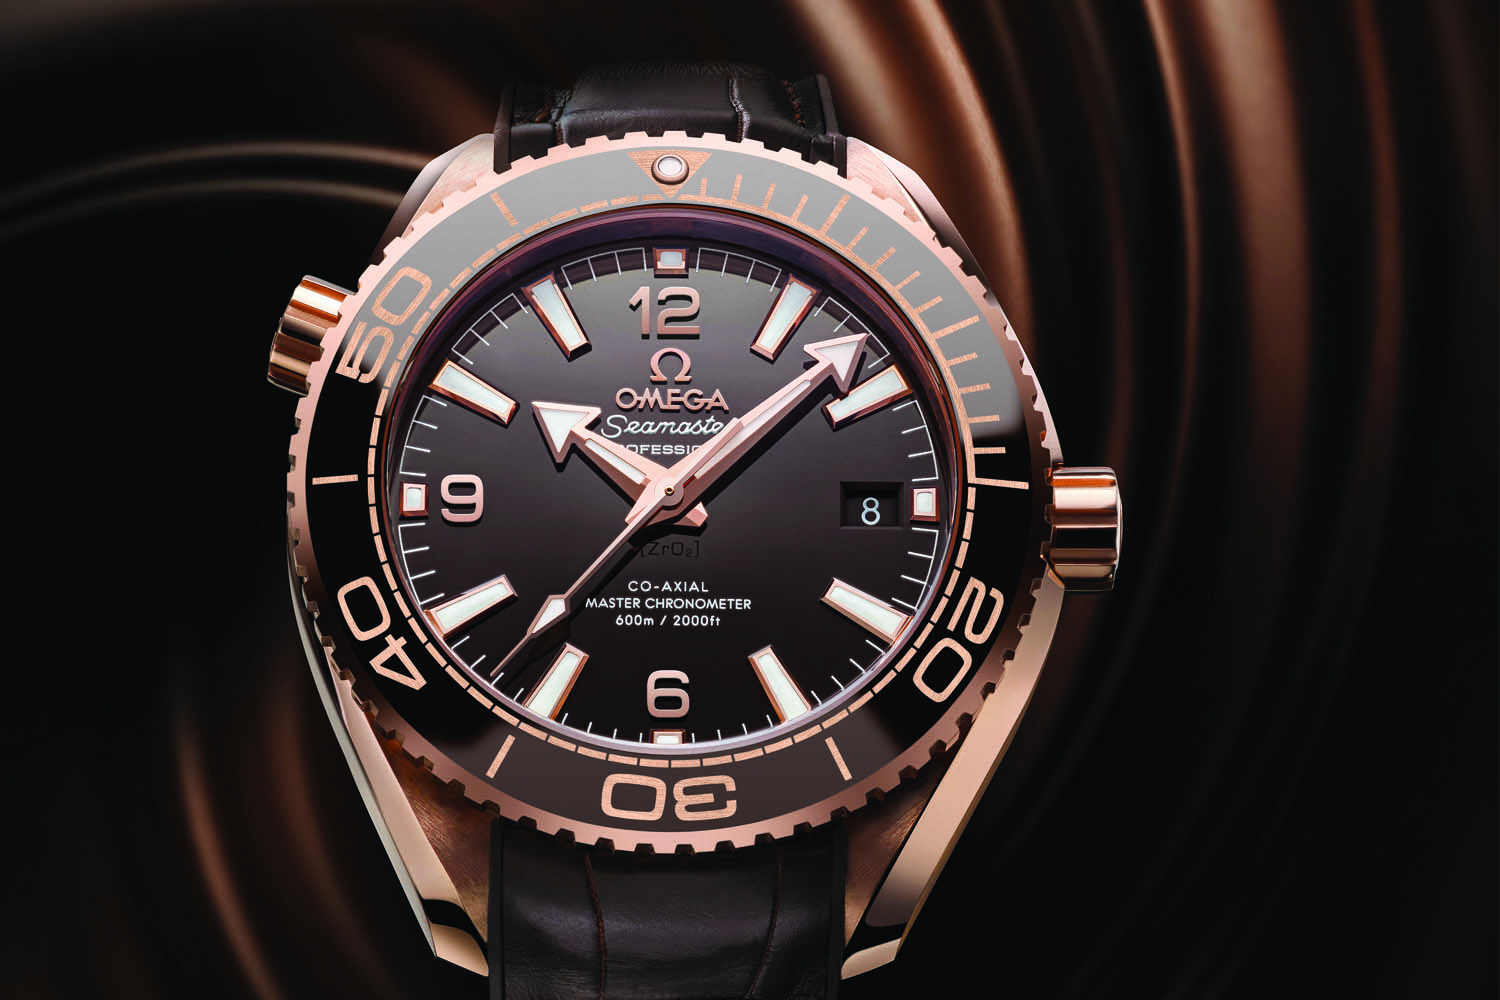 67e36d44aed Omega Seamaster Planet Ocean 600m Master Chronometer 39.5mm Sedna Gold  brown dial - baselworld 2016